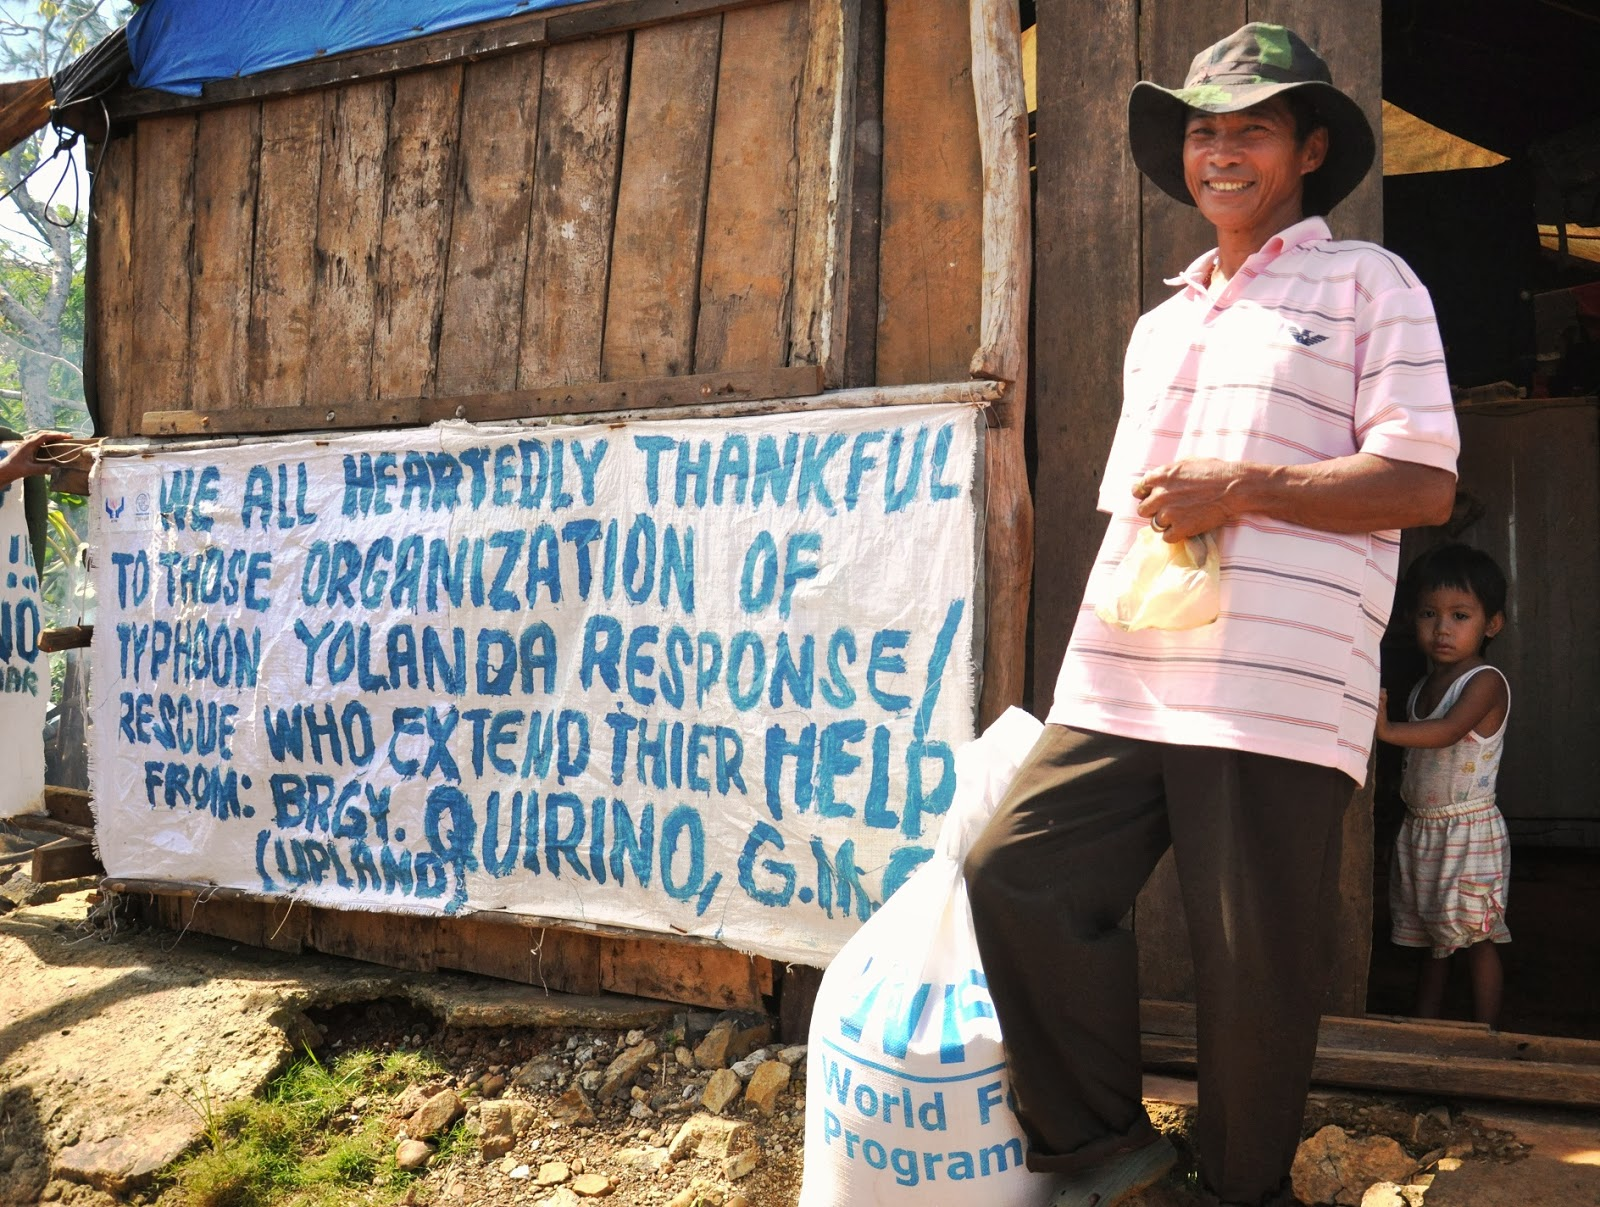 United Nations World Food Programme Wfp Boosts Recovery For Typhoon Yolanda Survivors Lionheartv